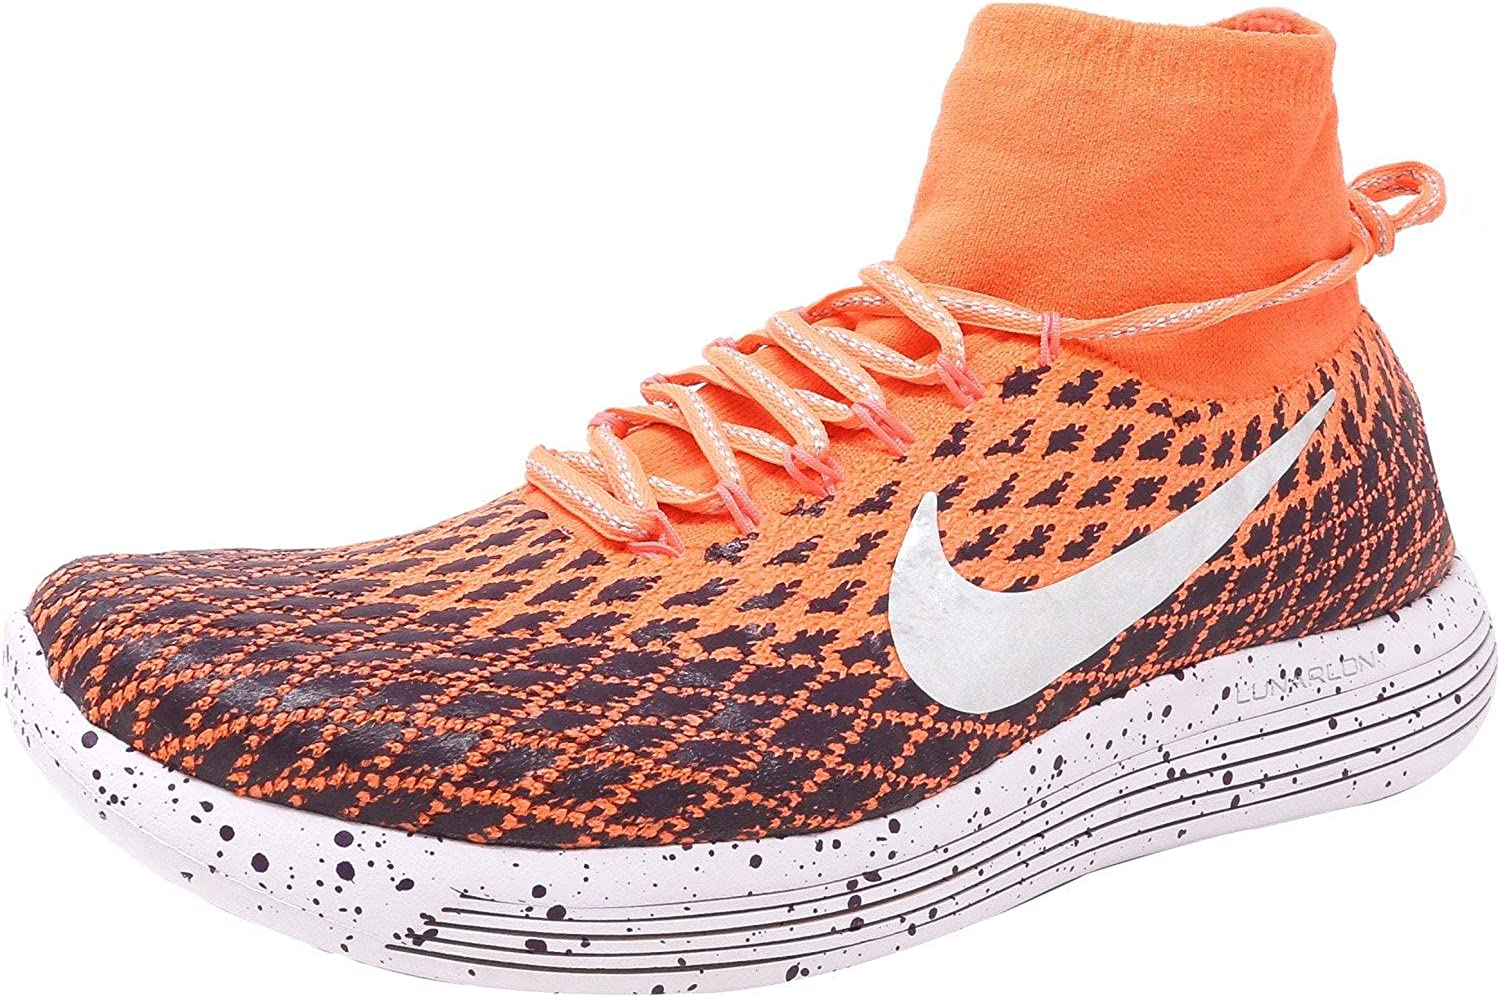 Nike Women's Lunarepic Flyknit Shield Ankle-High Fabric Running shoes